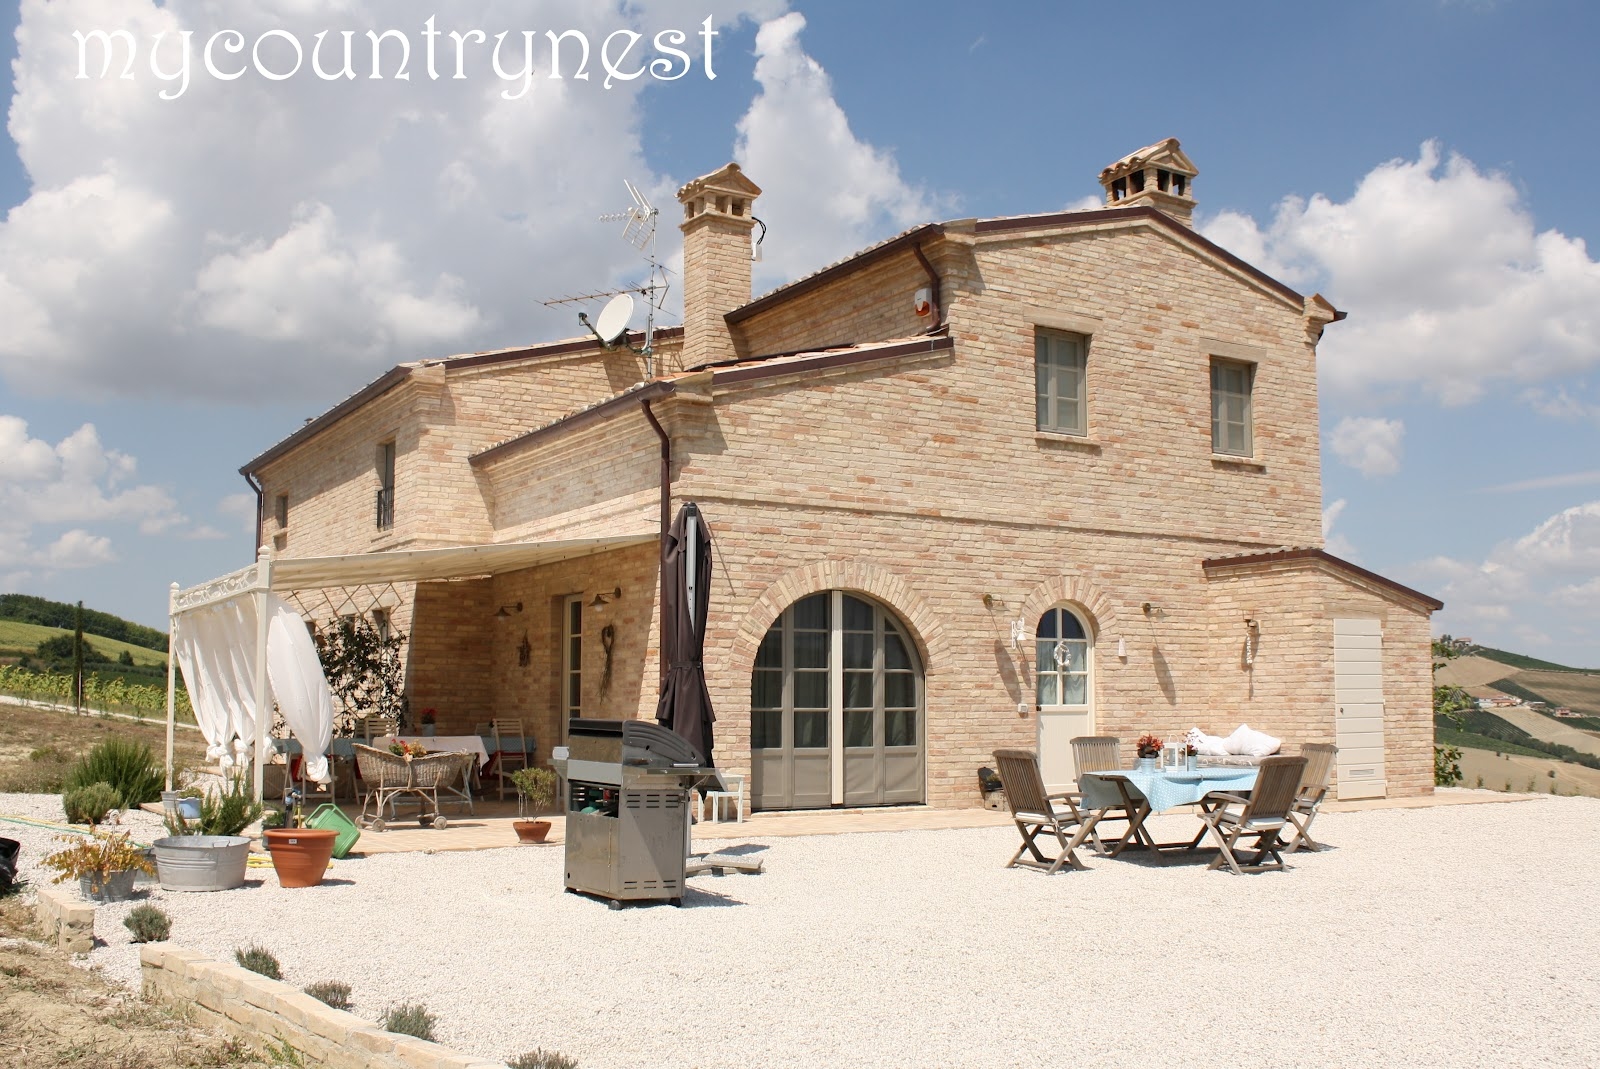 Antica selva bed and breakfast